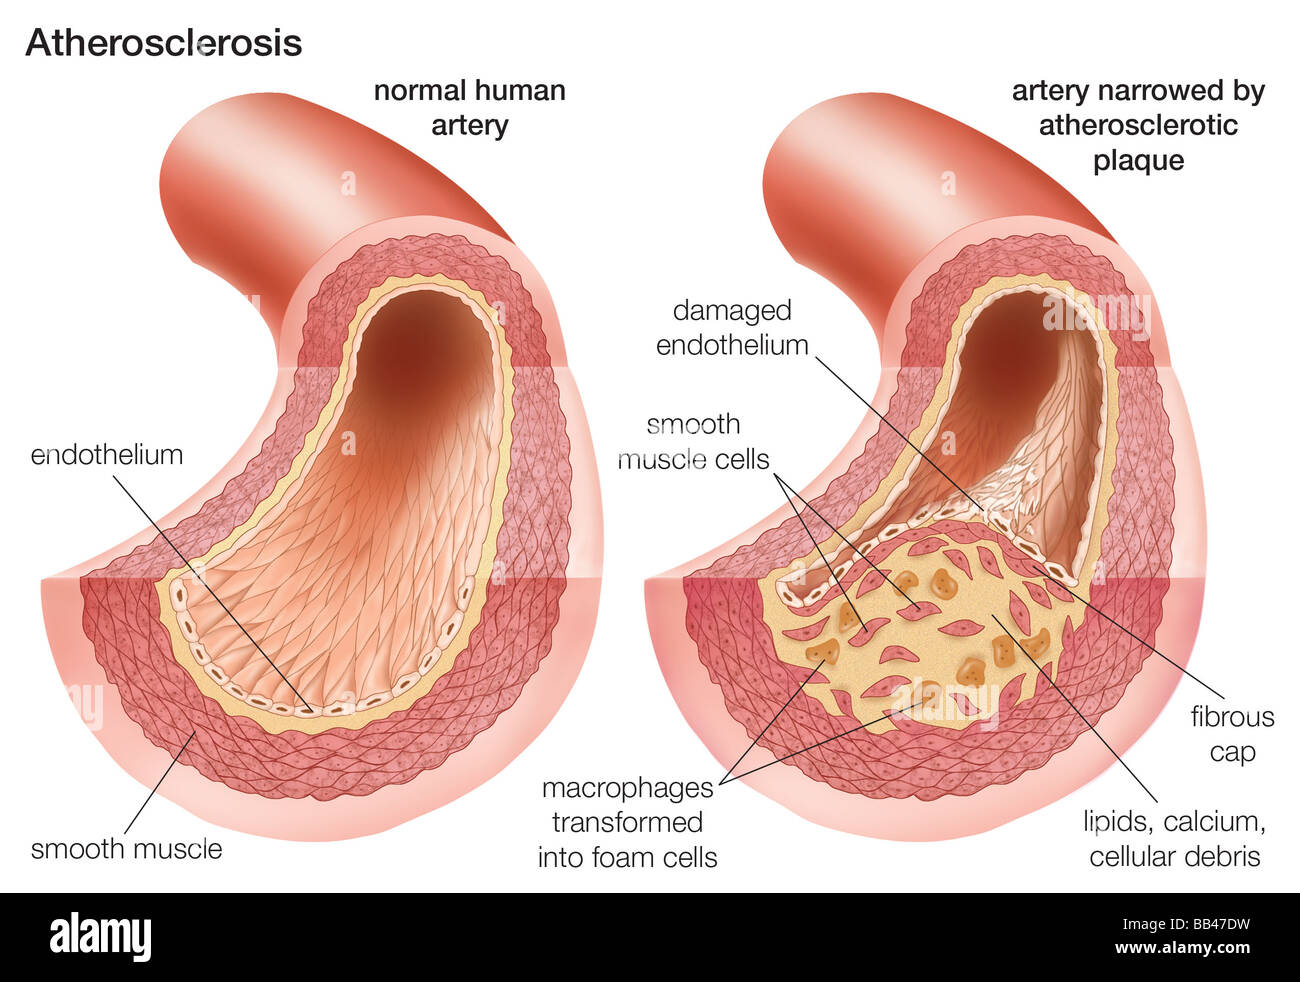 Atherosclerosis Comparison Of A Normal Artery With An